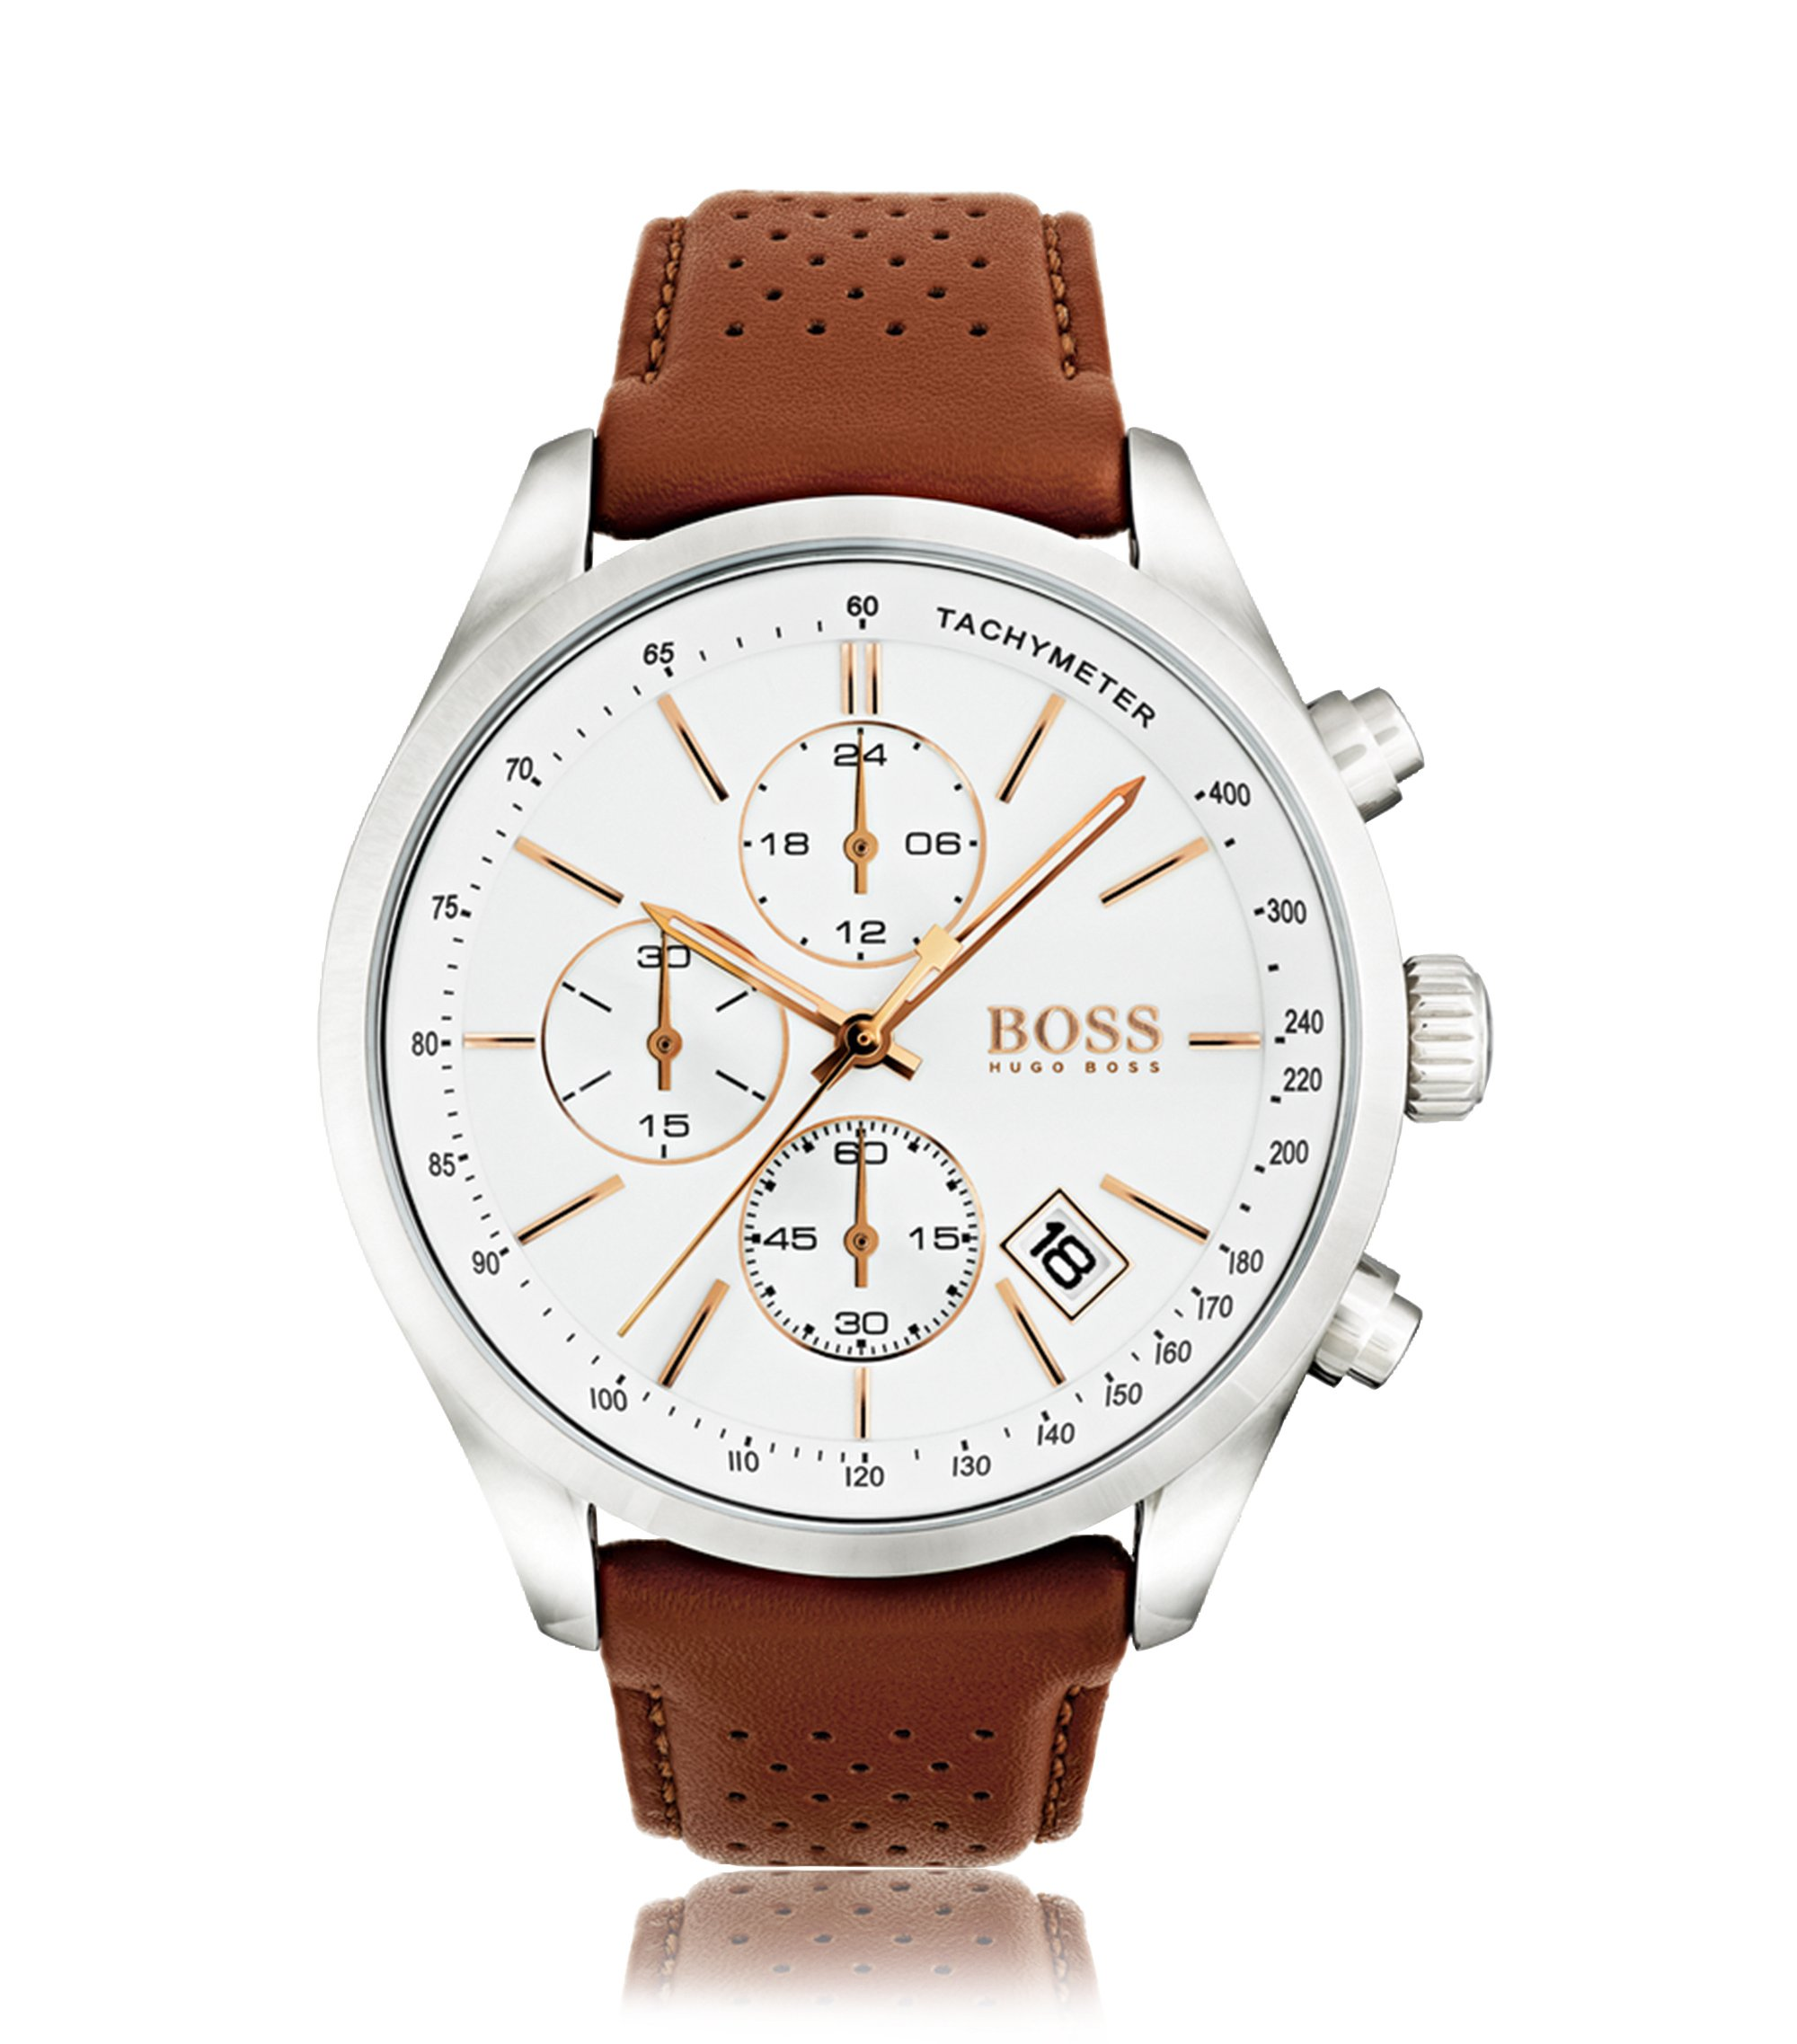 Polished stainless-steel sportswatch with white dial and perforated leather strap, Brown